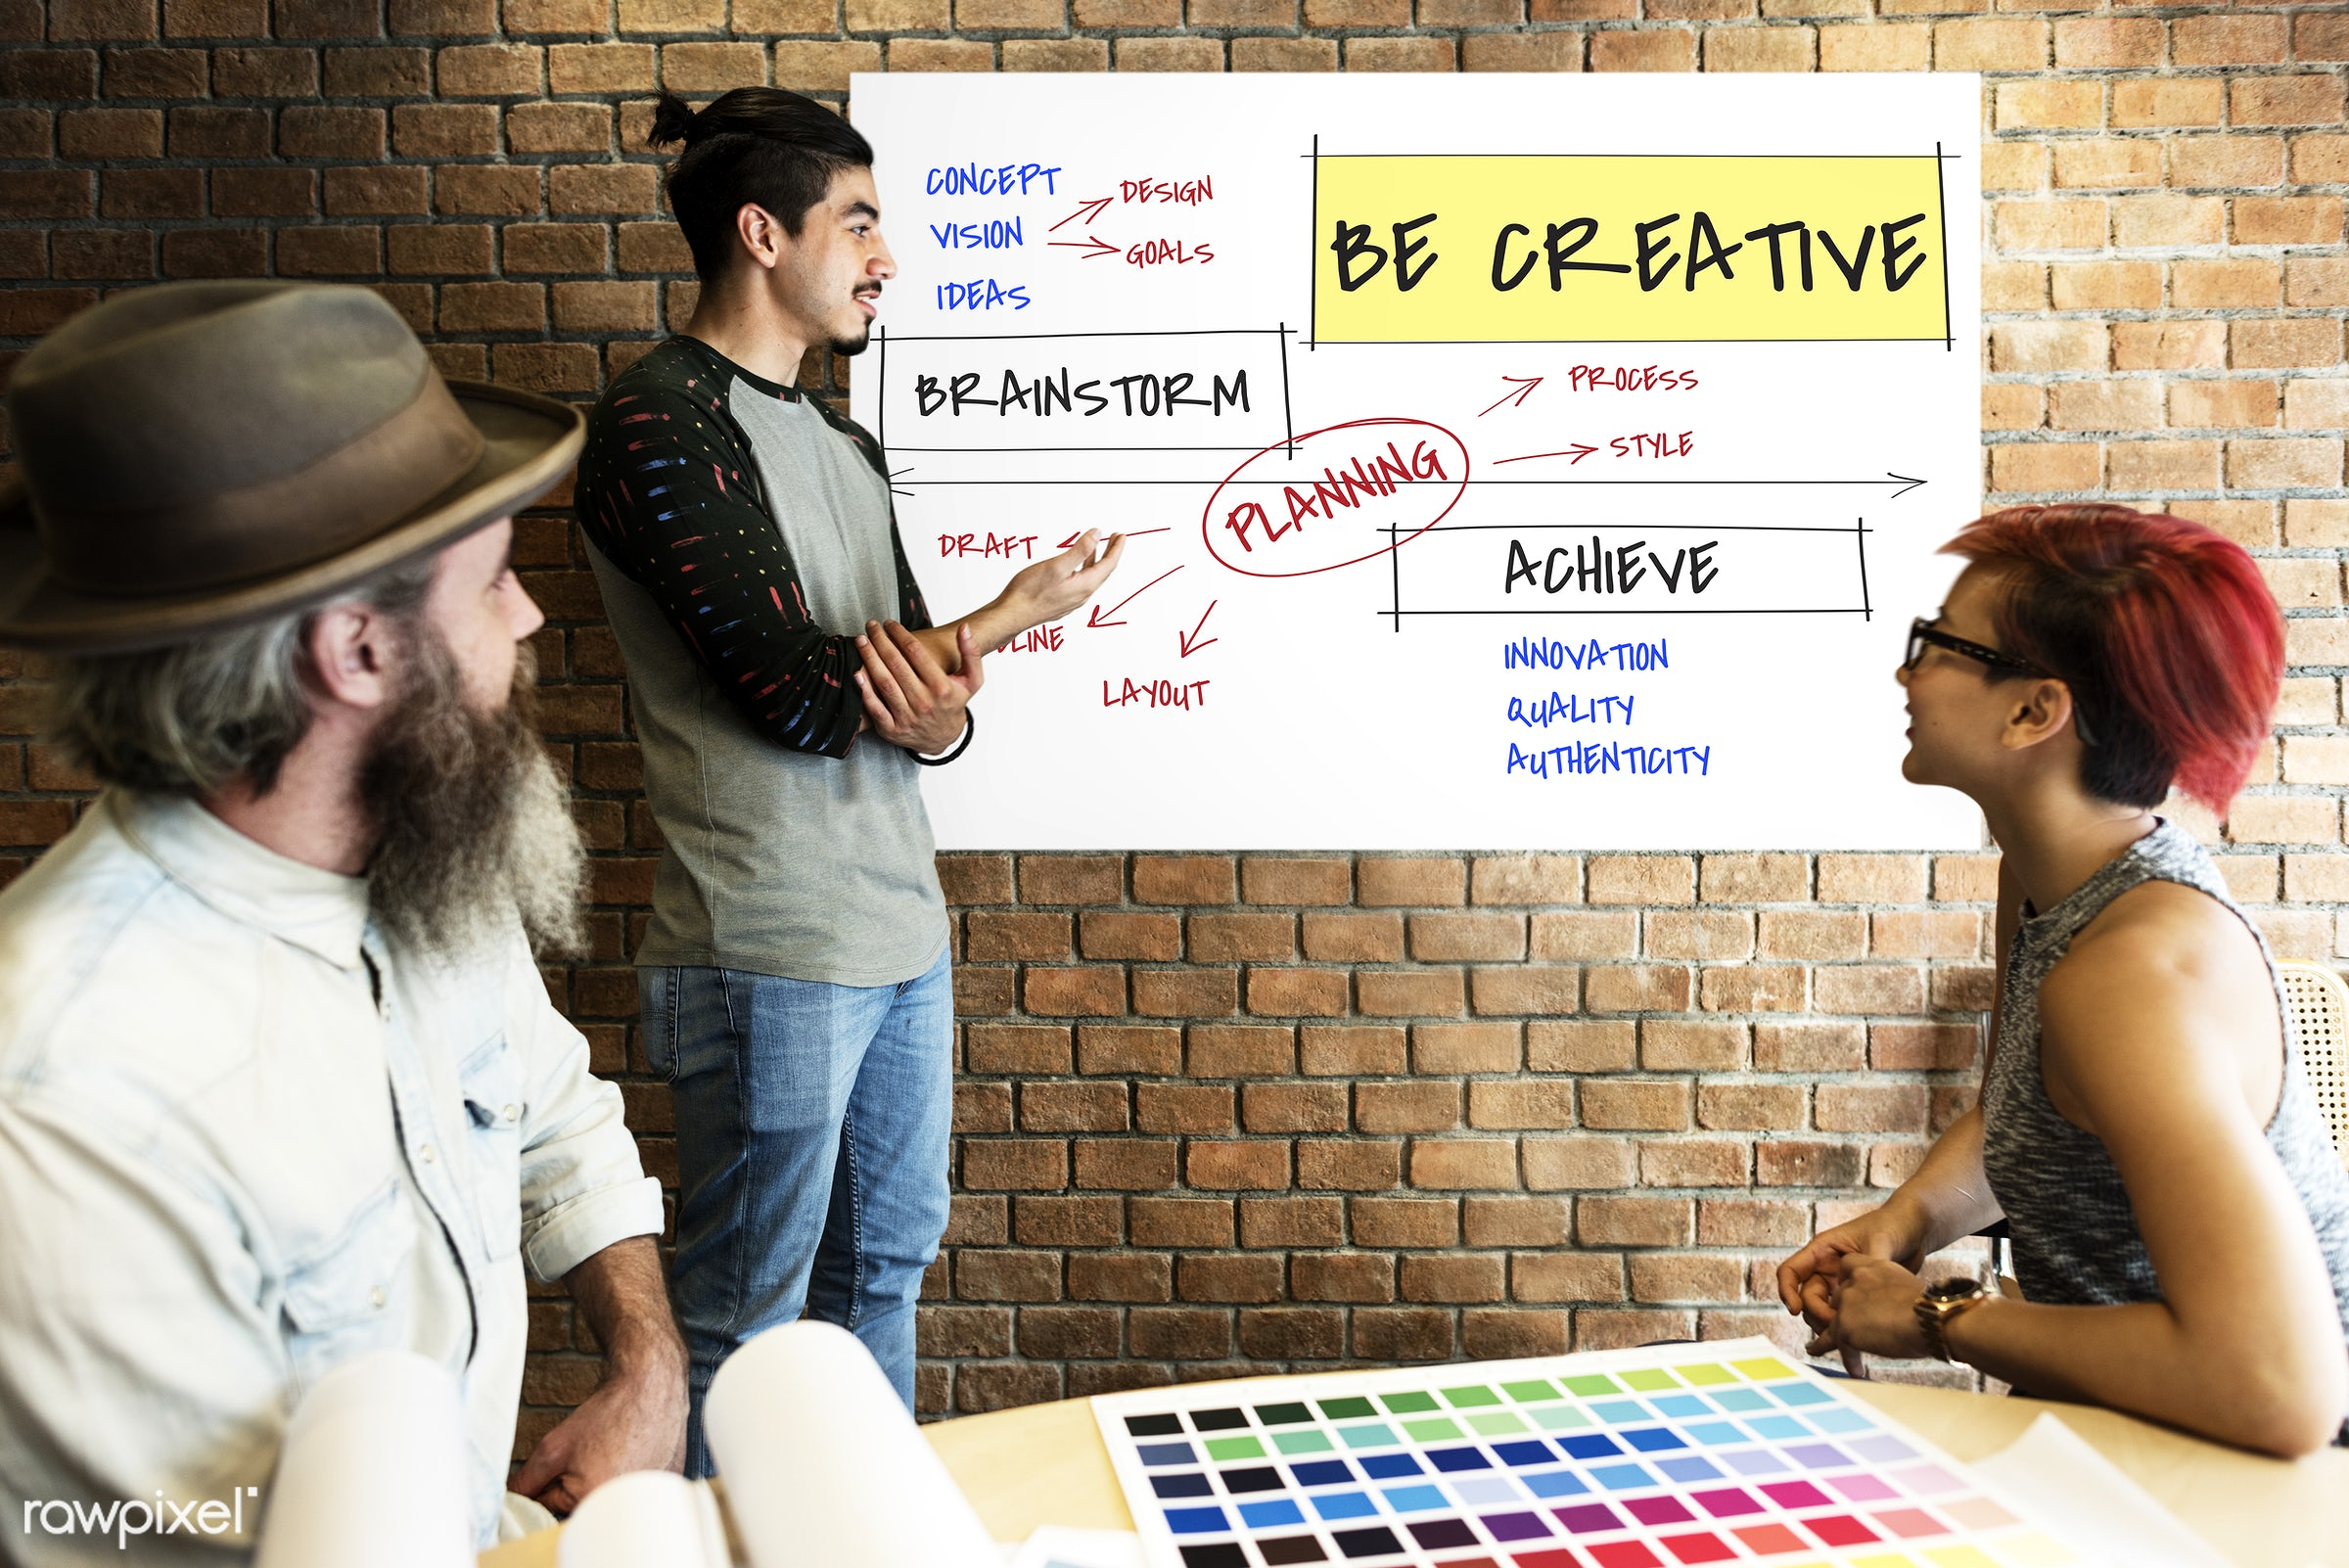 achieve, art, authenticity, be creative, beard, board, brainstorm, brick wall, chart, color chart, colors, creative,...